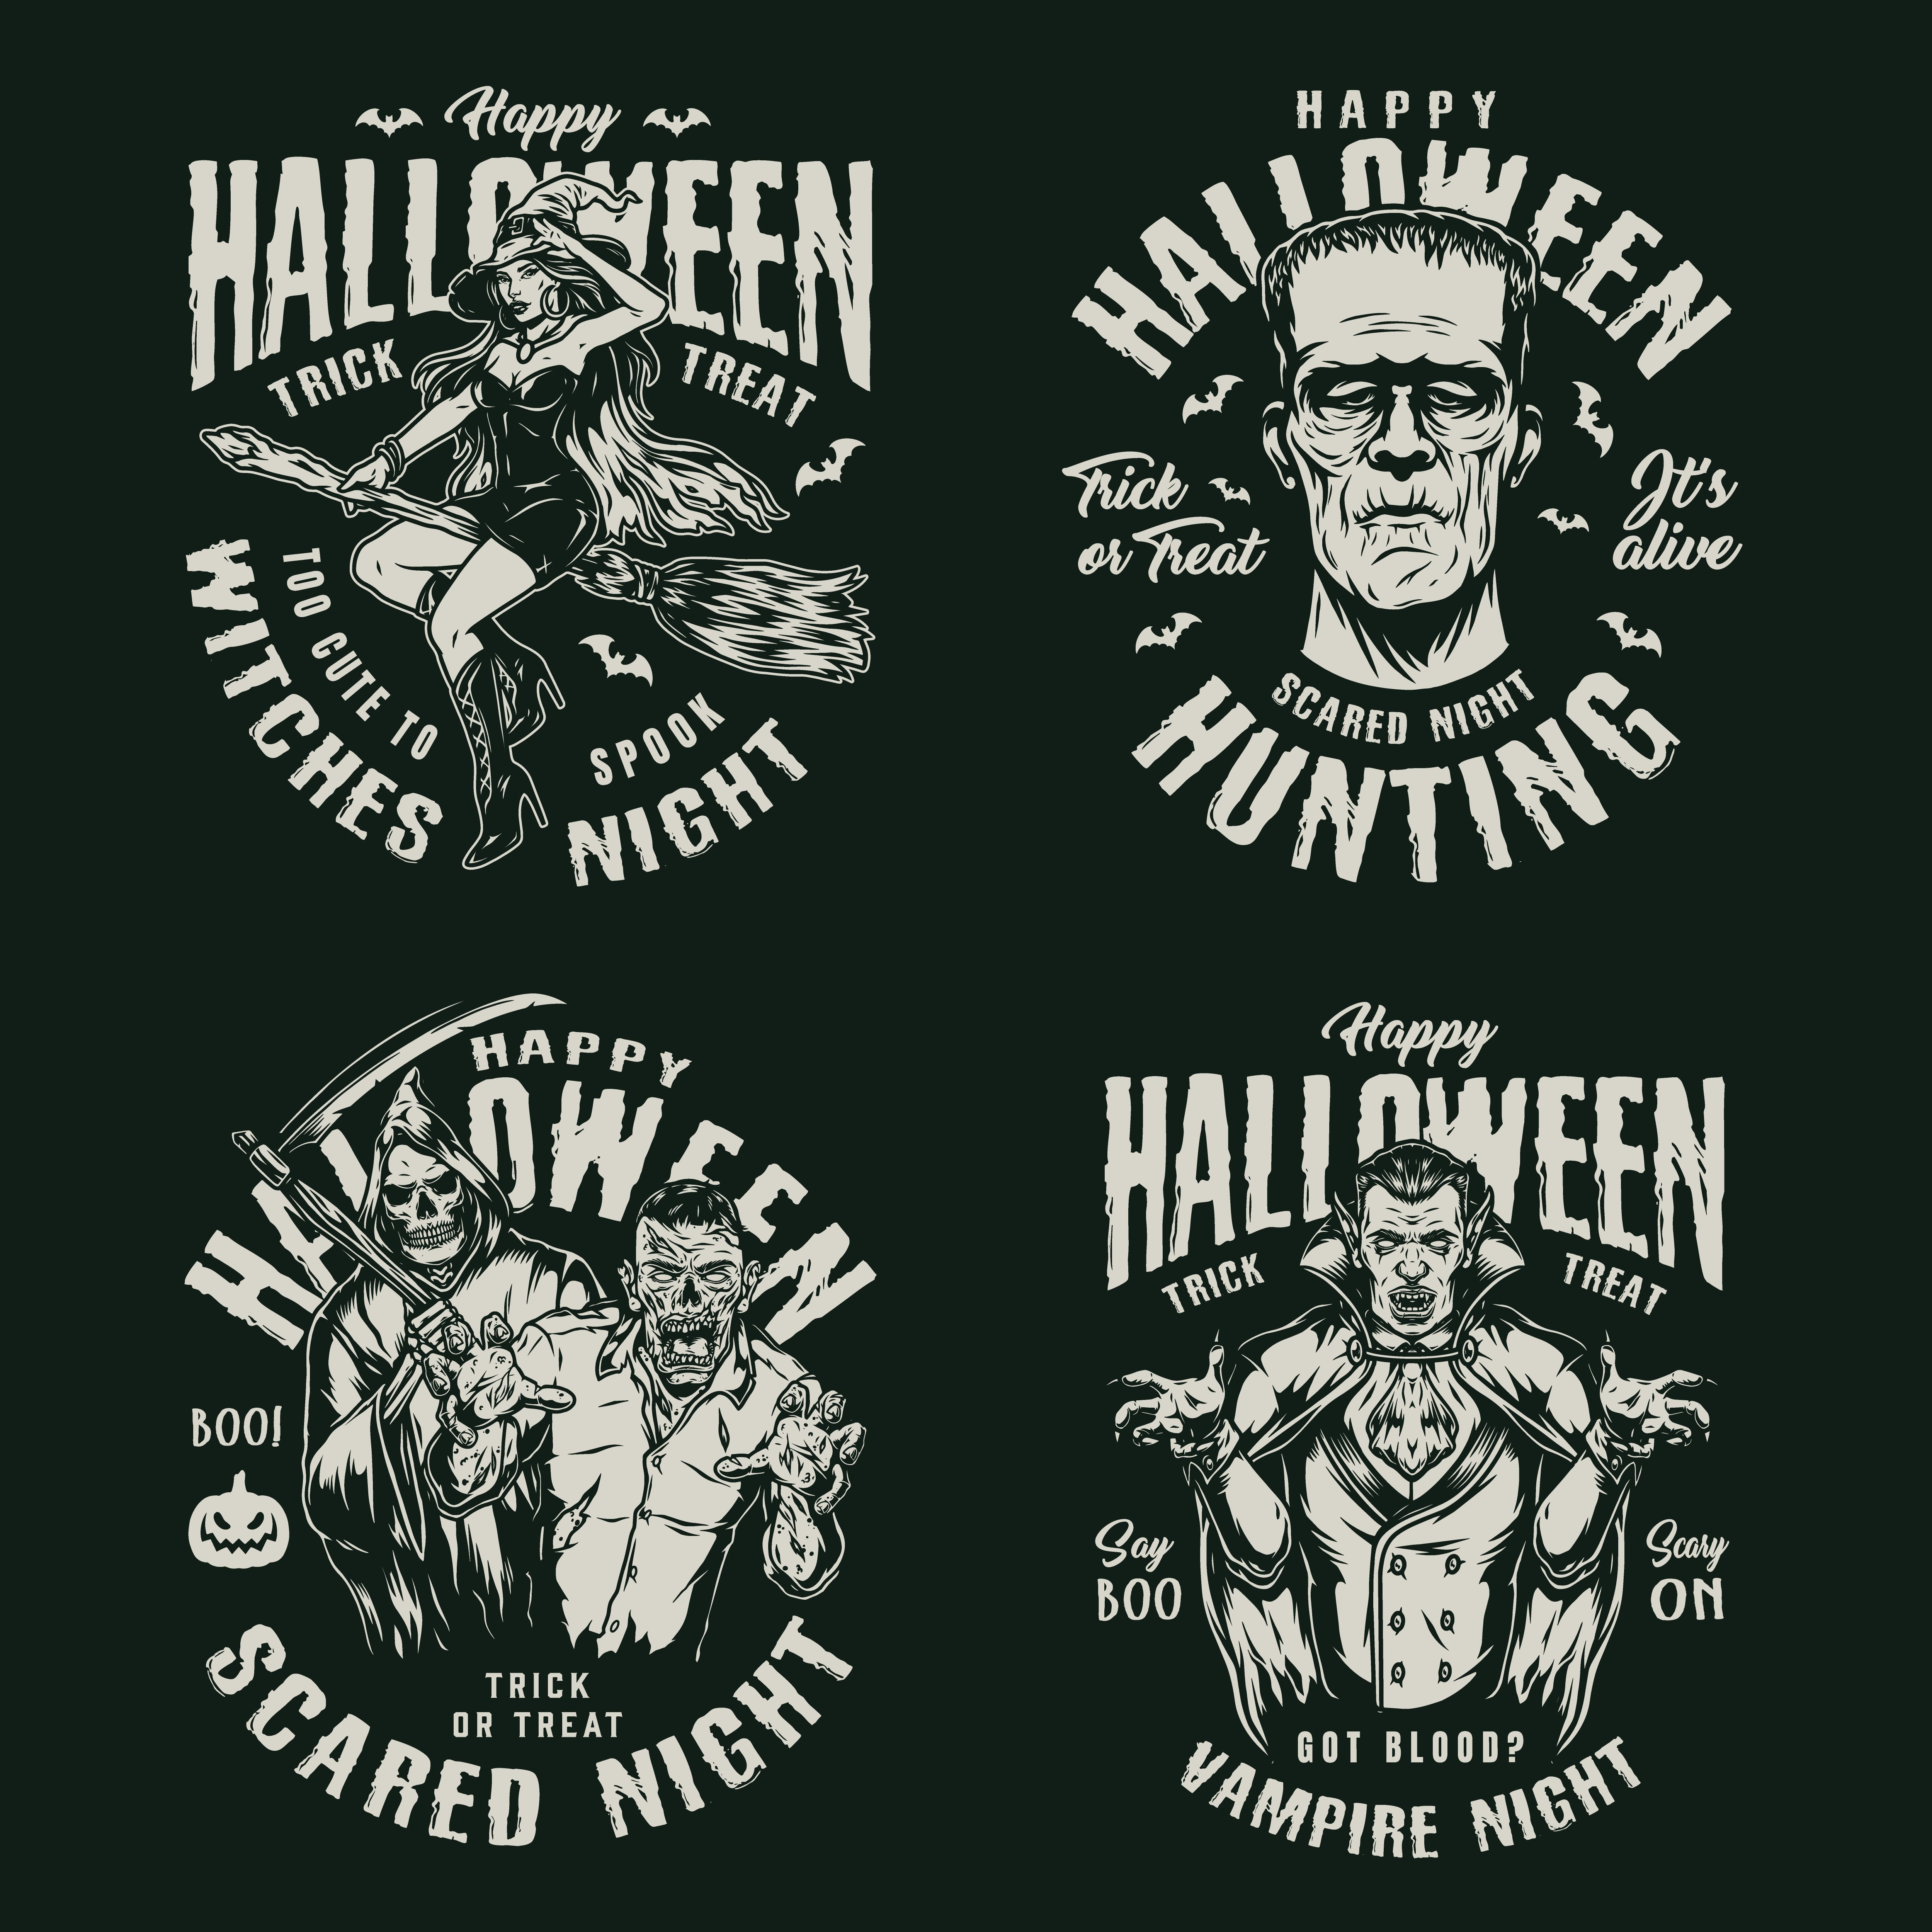 Holiday Brand Halloween 2020 Collection Happy Halloween designs 2020 in 2020 | Halloween design, Halloween